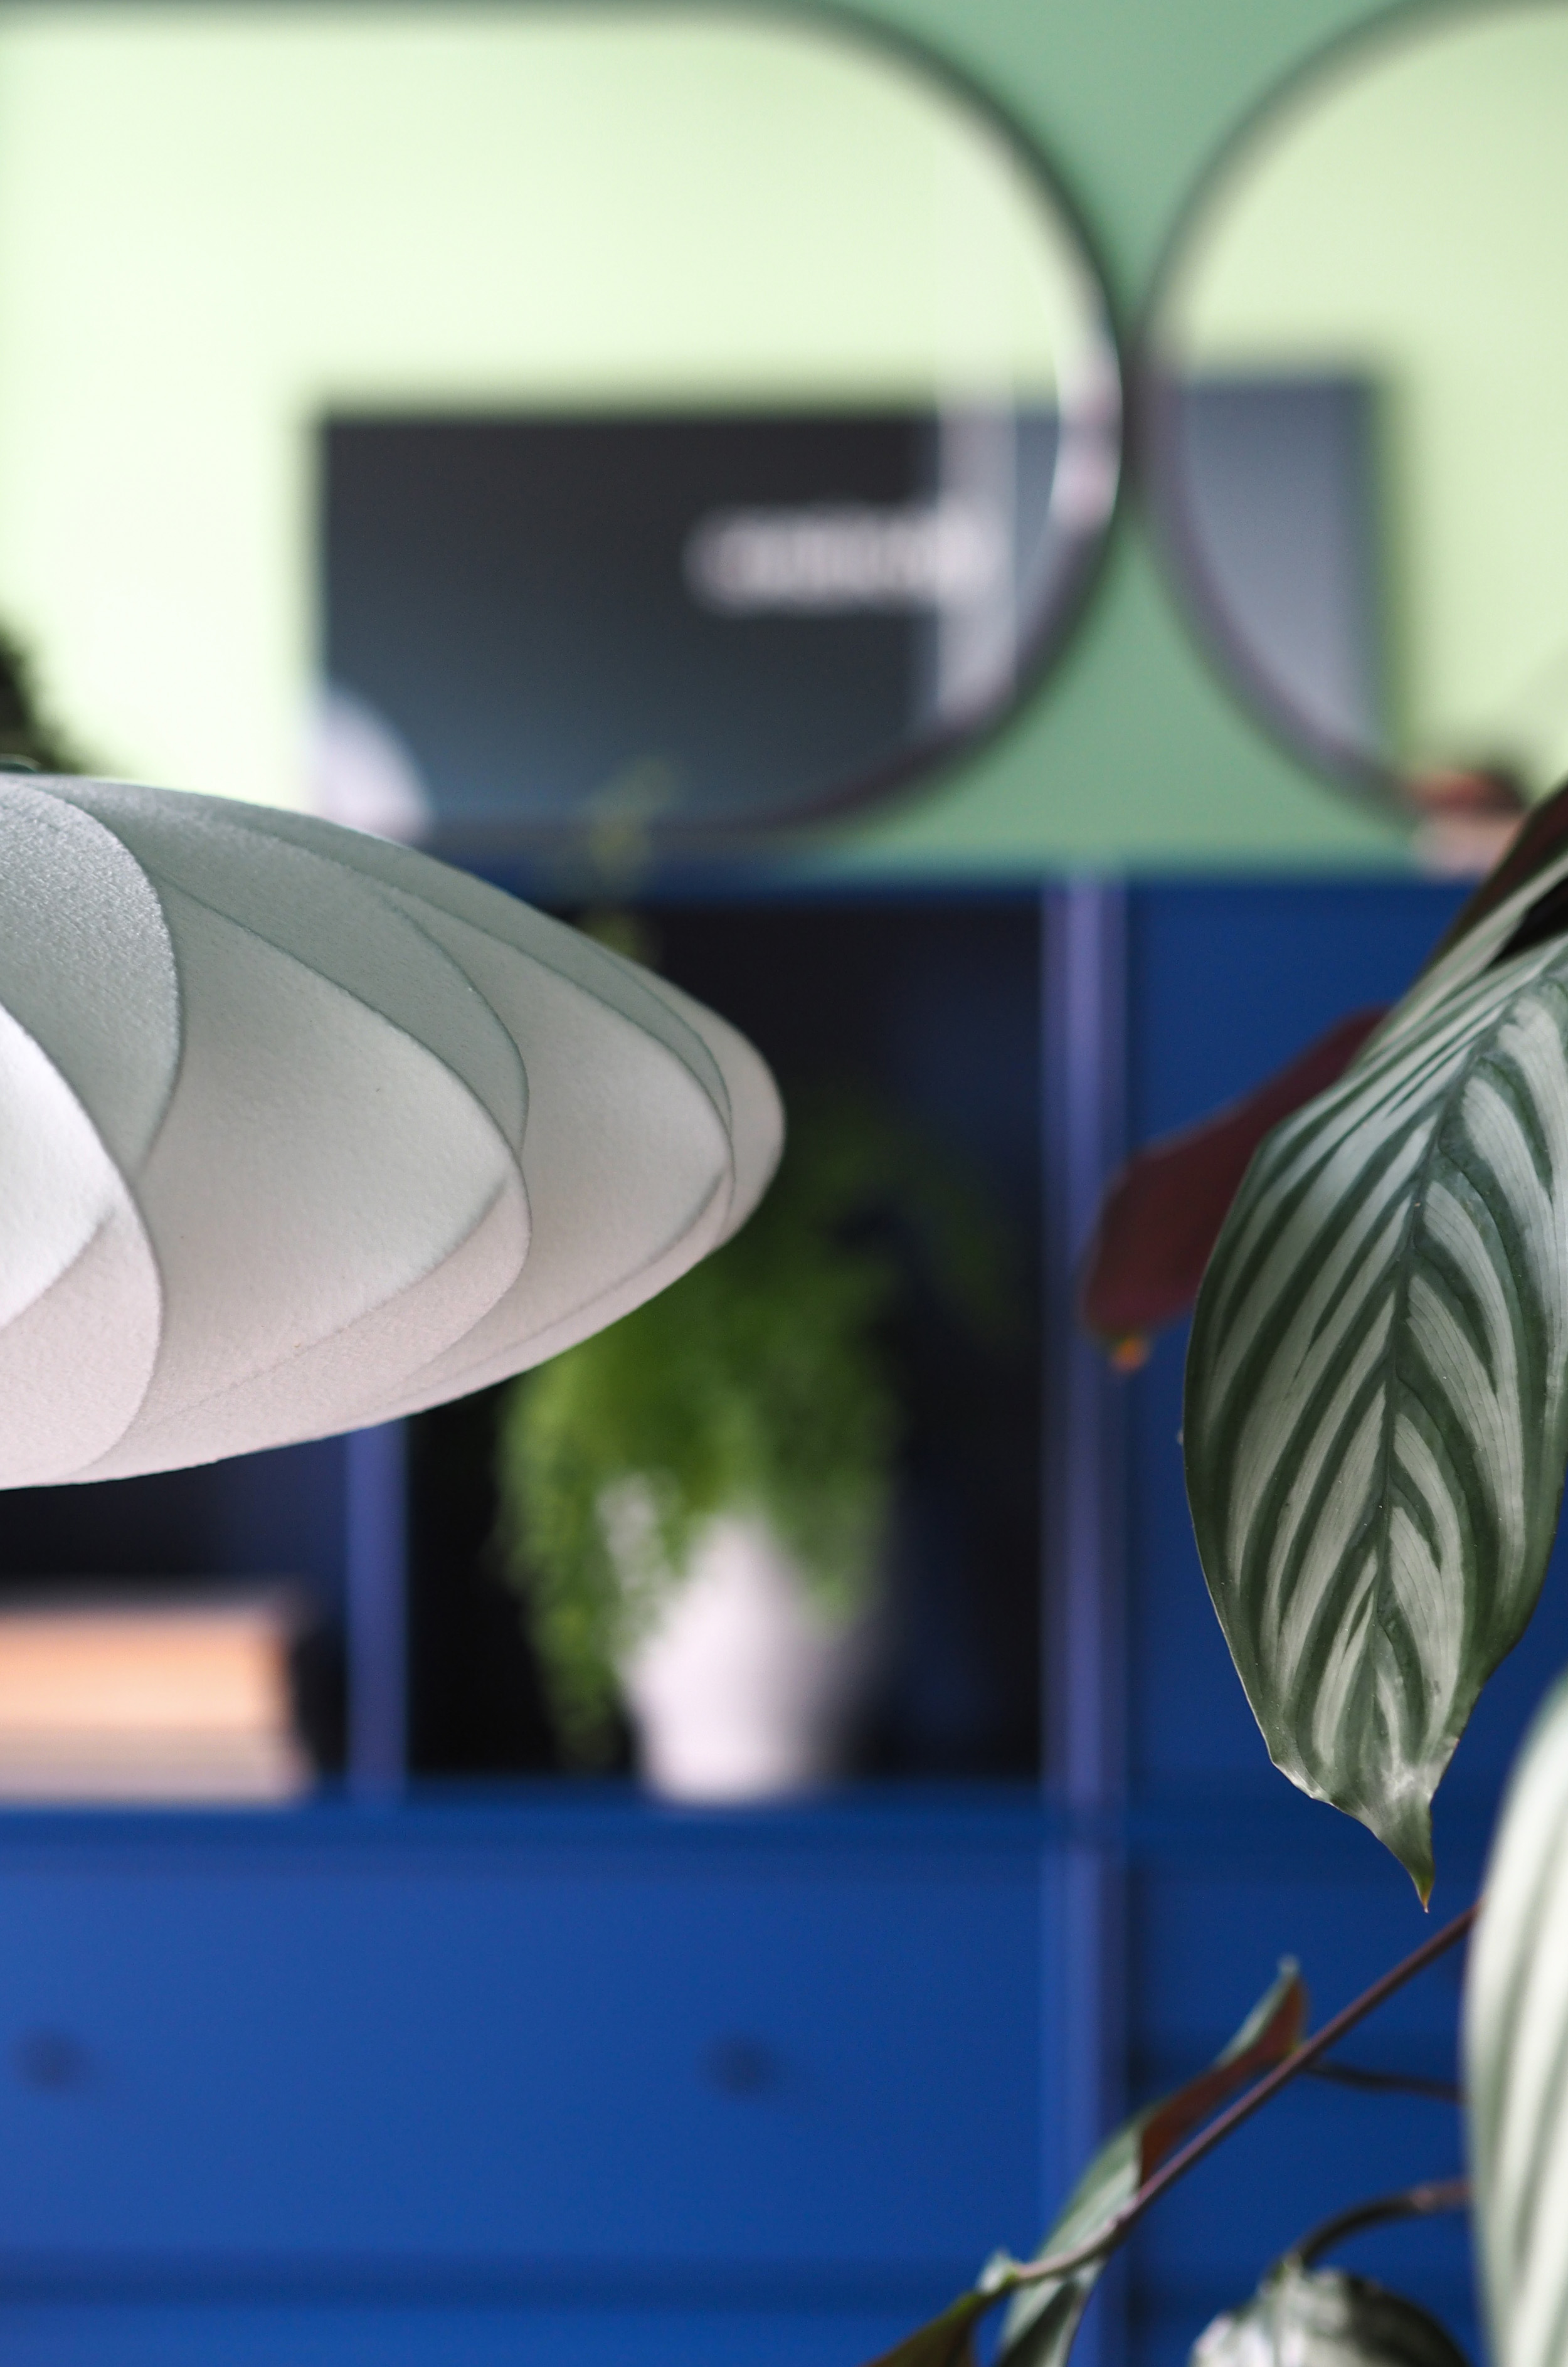 Skandium's eco townhouse for LDF18 with Montana and Skagerak